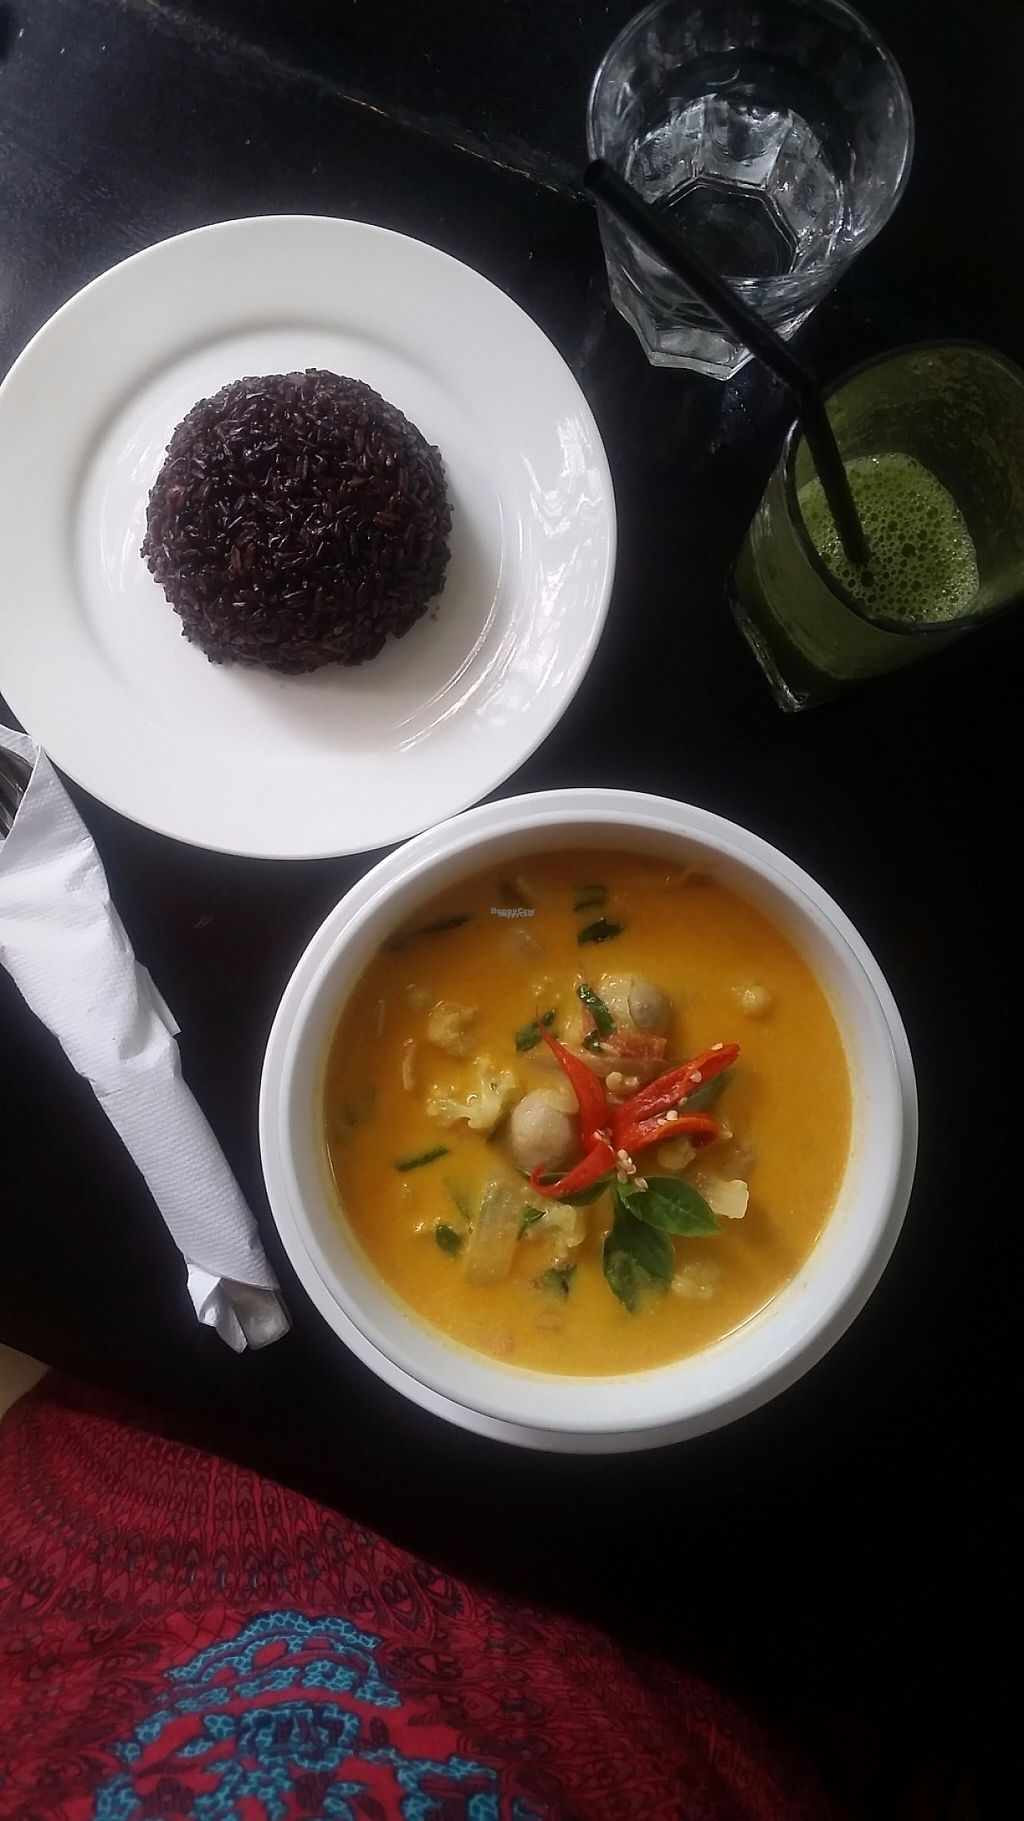 """Photo of The Corn  by <a href=""""/members/profile/Without_Cruelty_Blog"""">Without_Cruelty_Blog</a> <br/>Khmer Tom Yum with Black Rice <br/> November 11, 2016  - <a href='/contact/abuse/image/43847/188578'>Report</a>"""